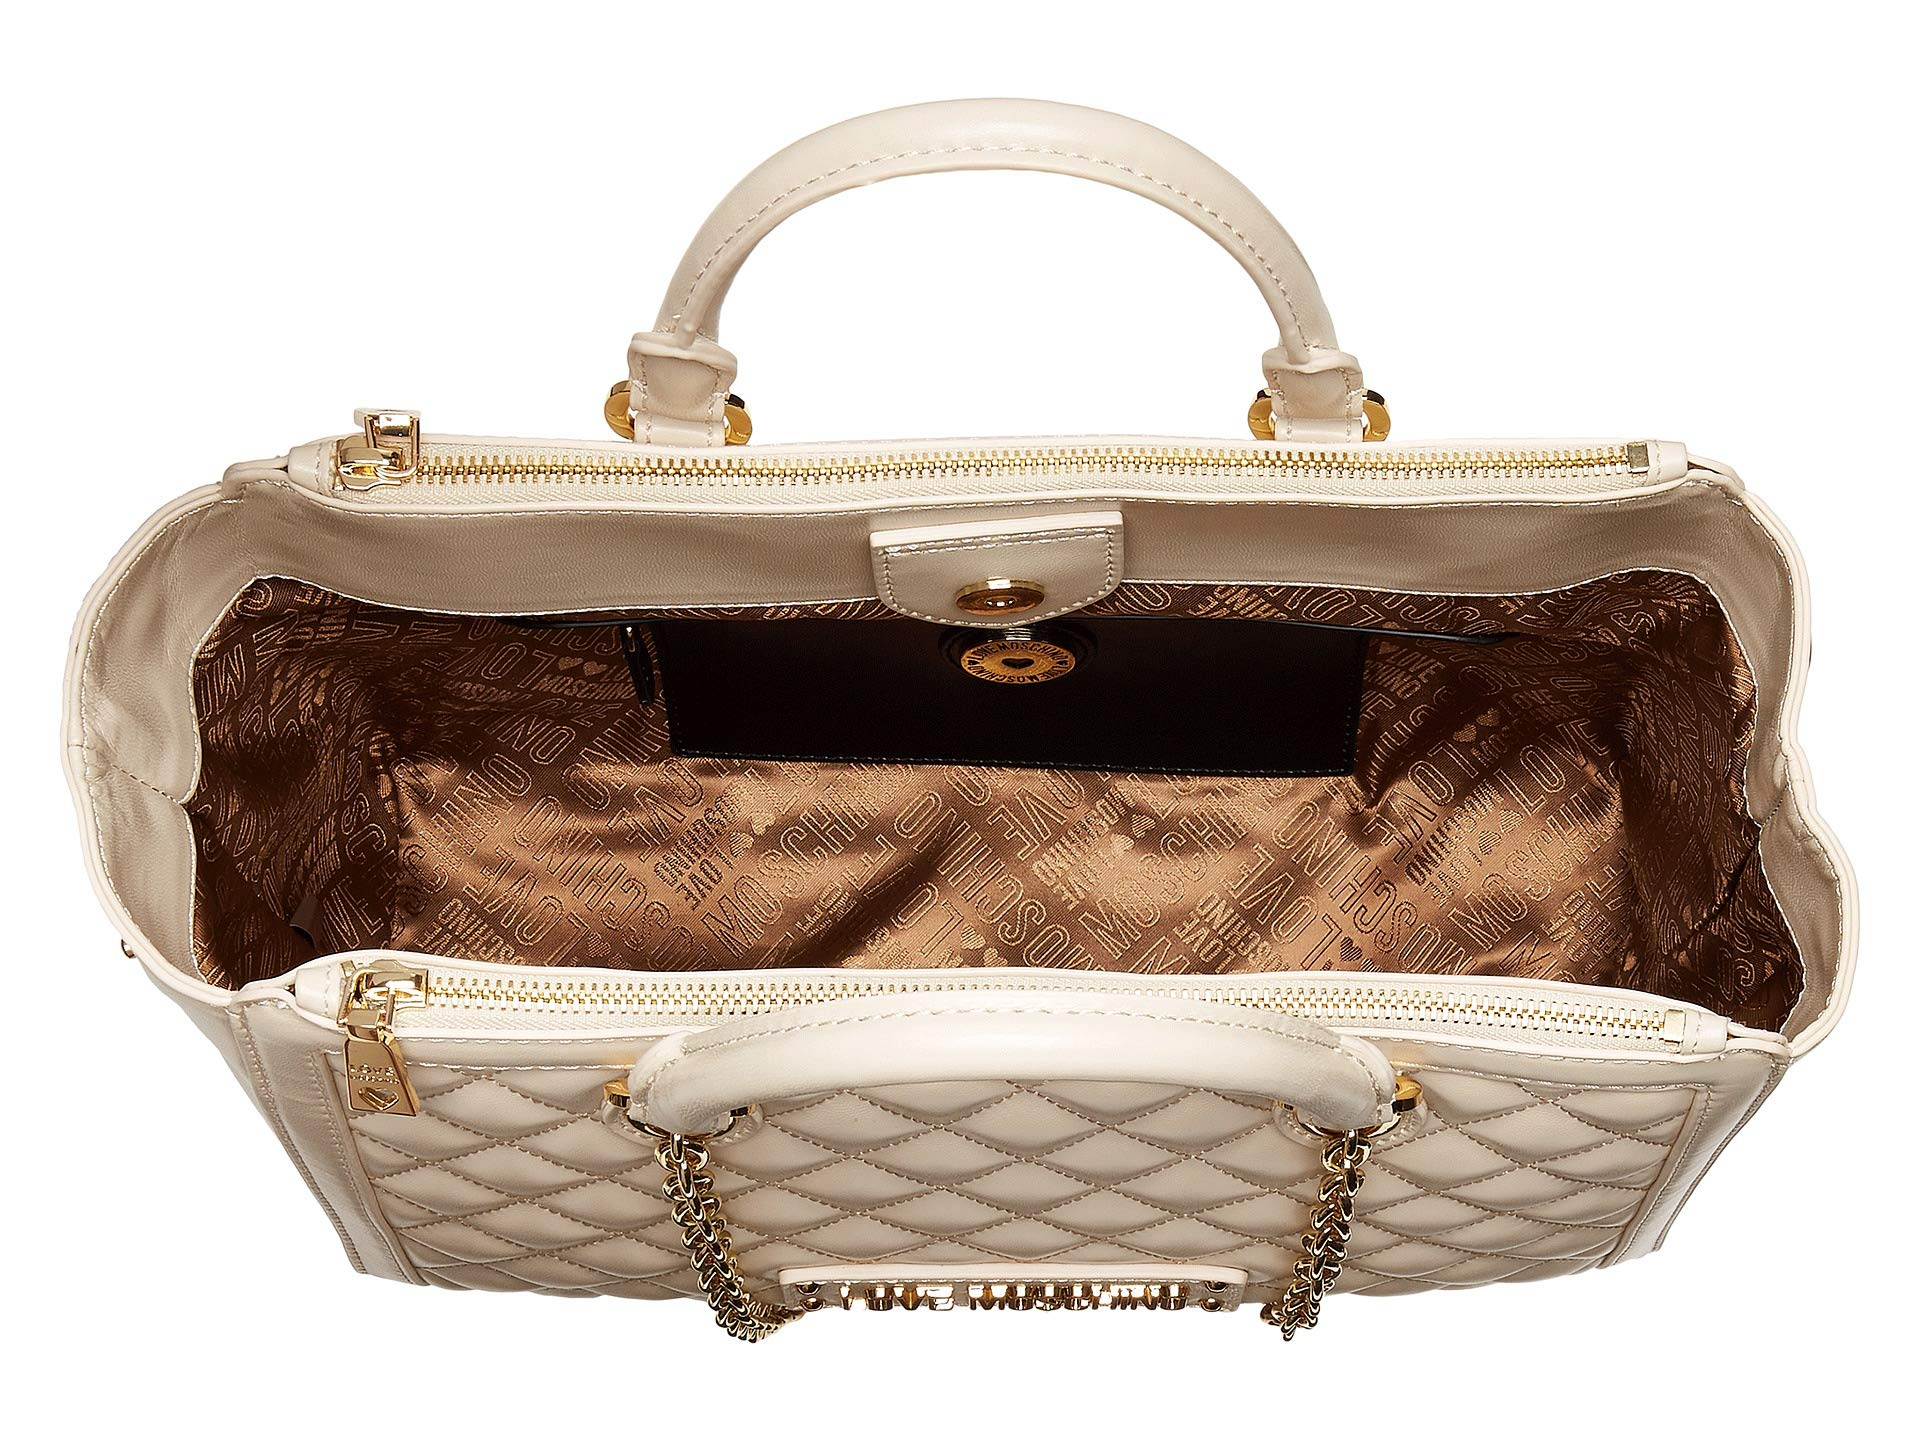 Quilted Moschino With Strap Handbag Love Shiny Ivory Chain wEqza1d